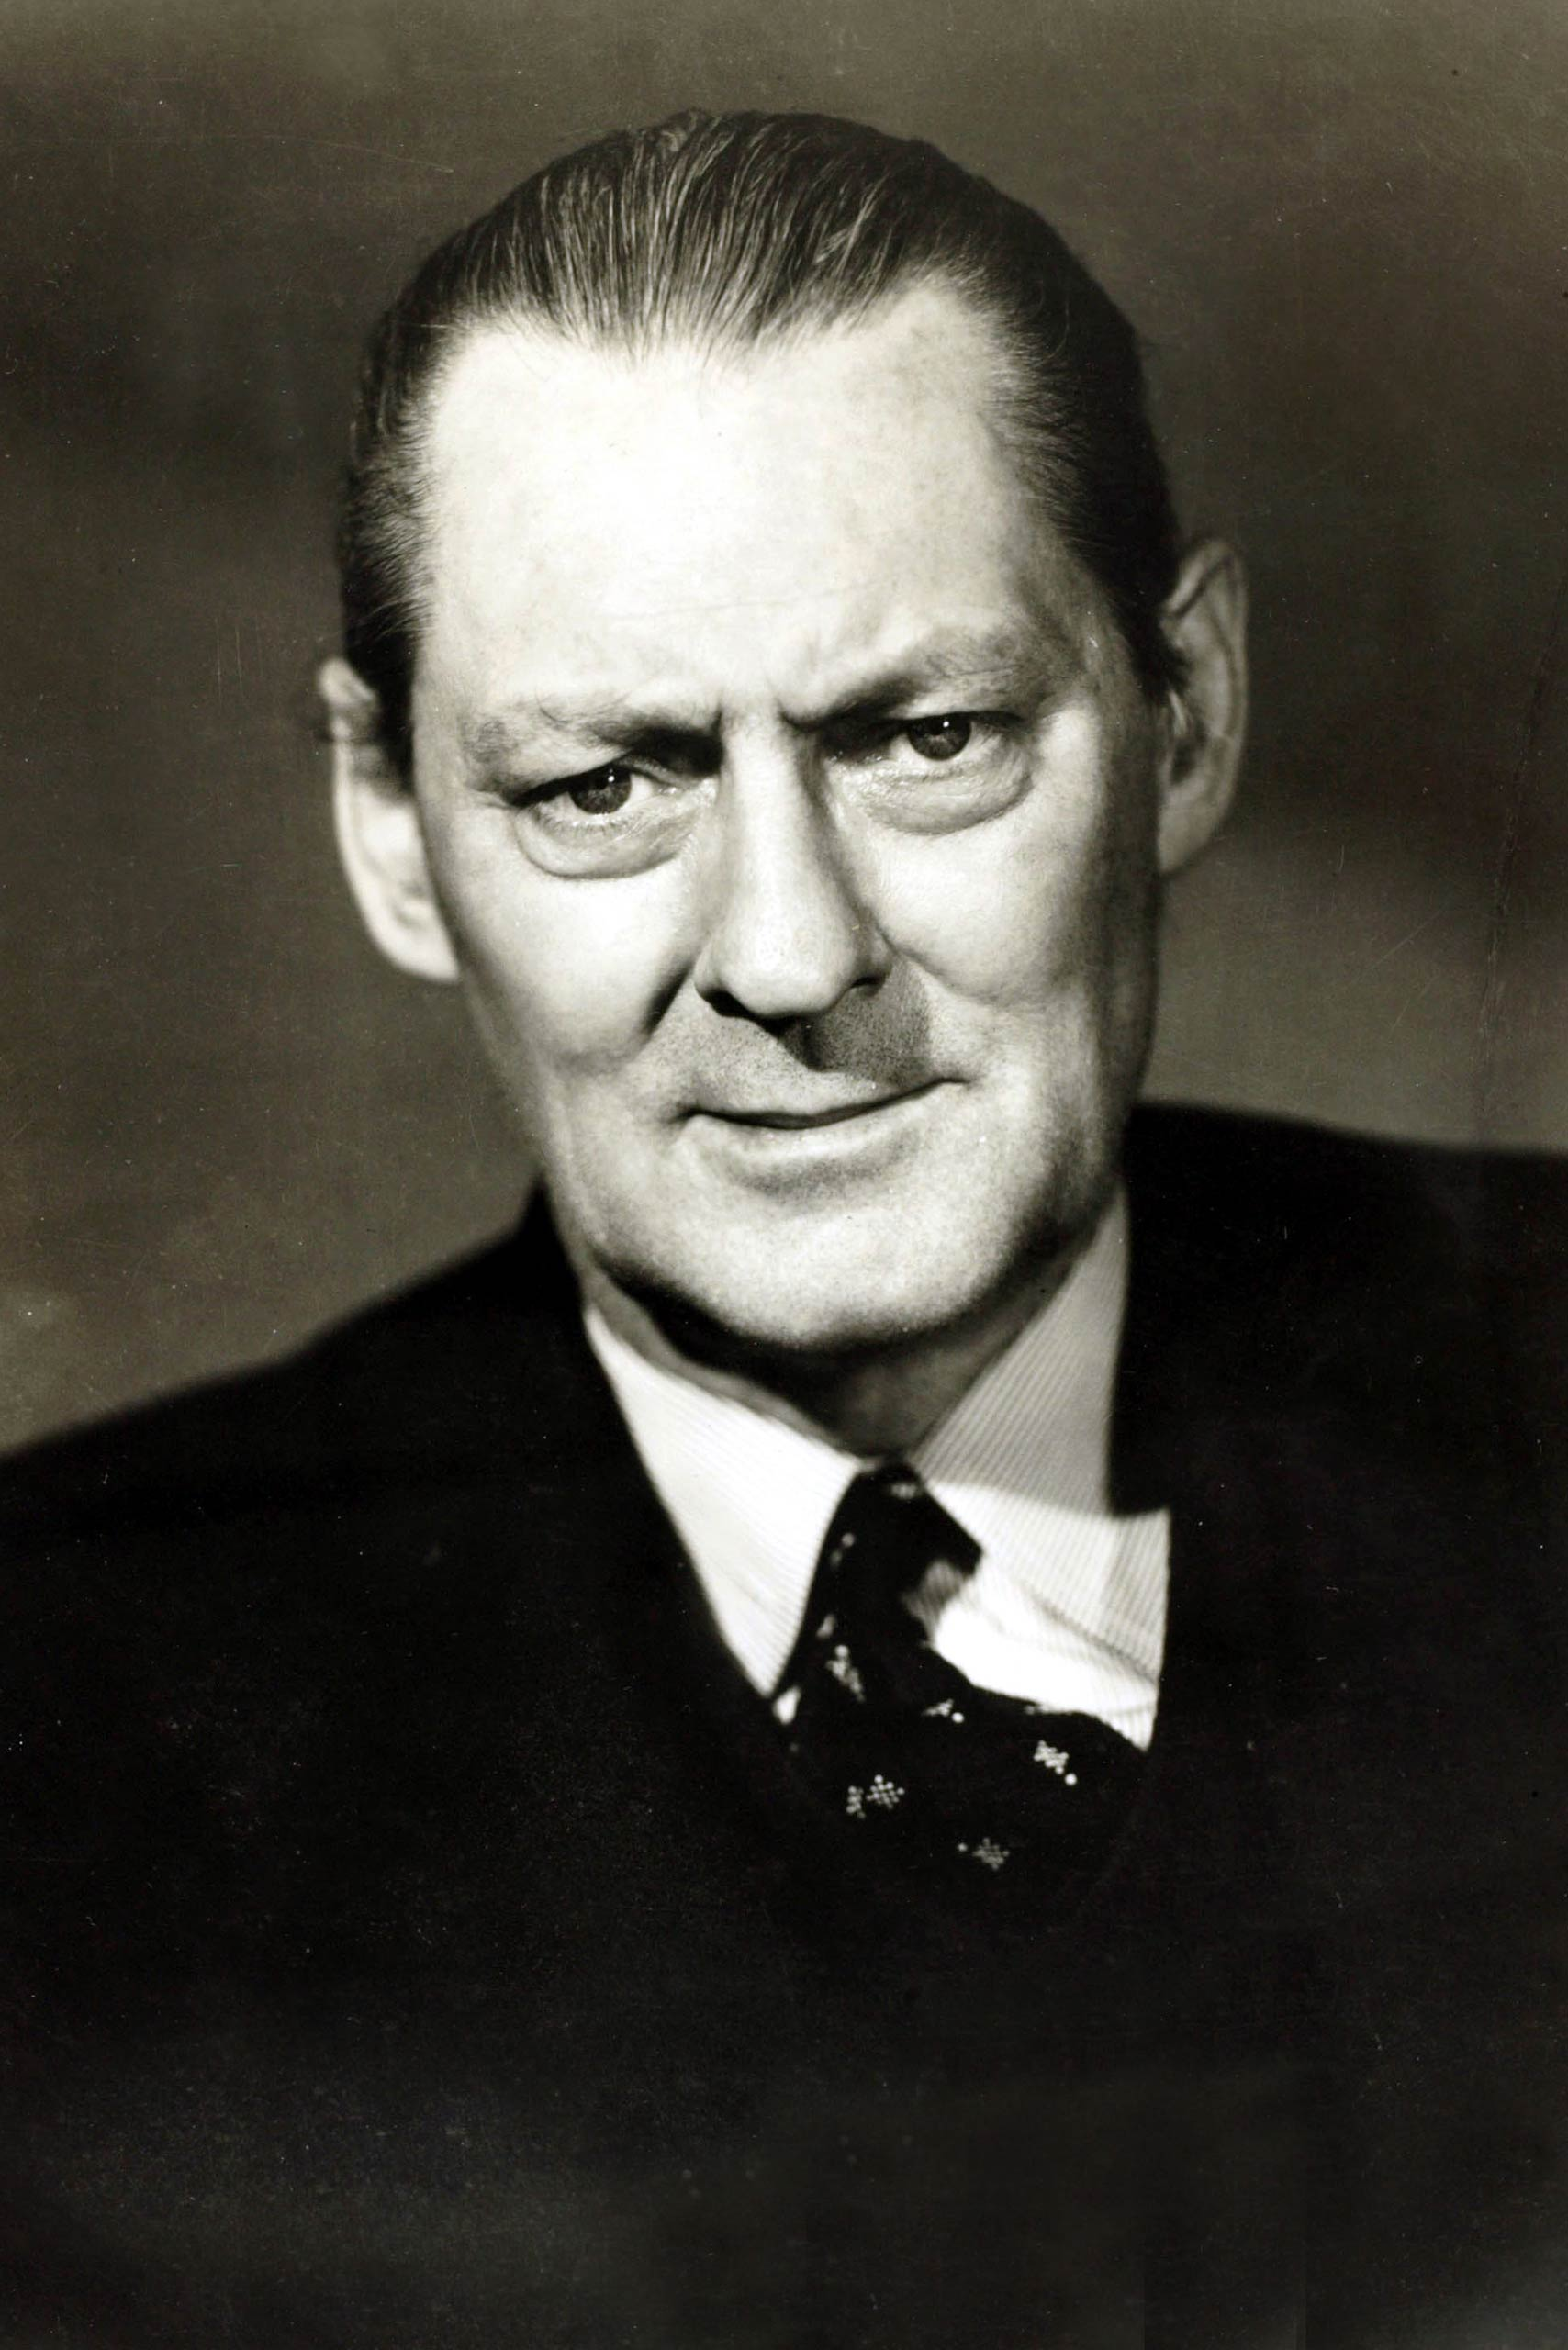 <strong>1932: Lionel Barrymore - <i>A Free Soul</i></strong>